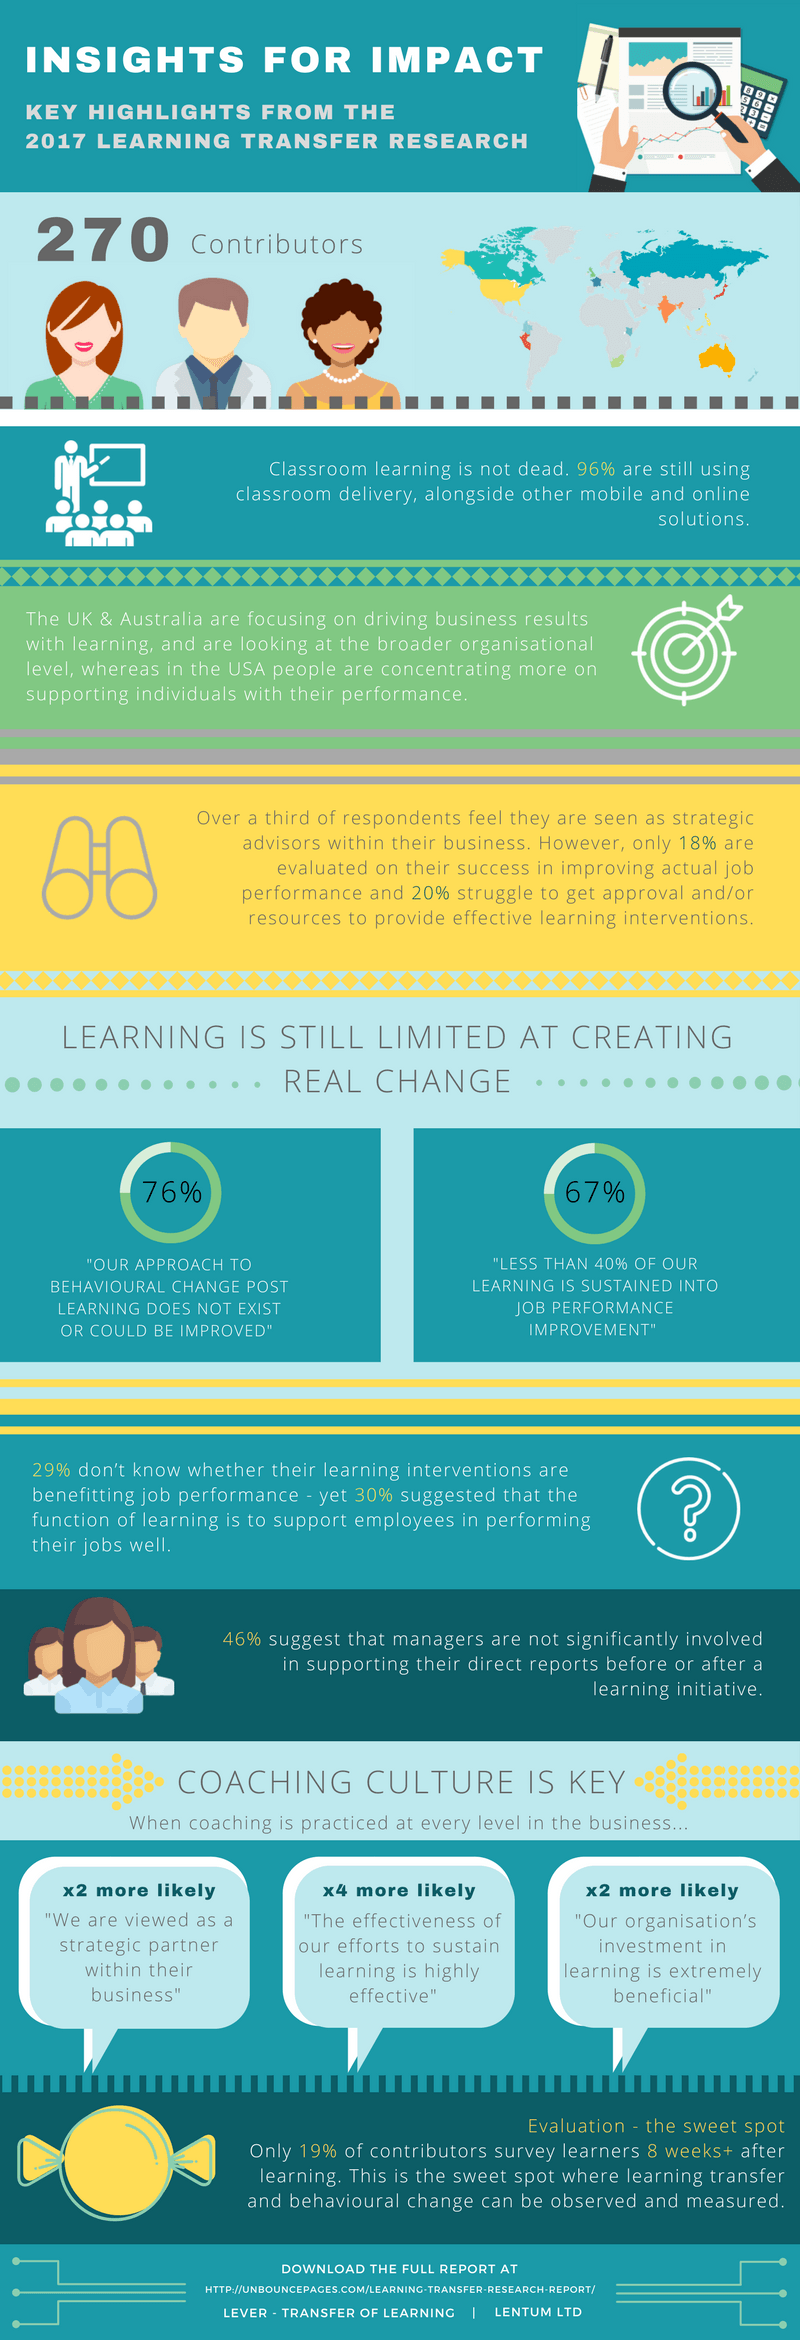 2017 Learning Transfer Research Infographic